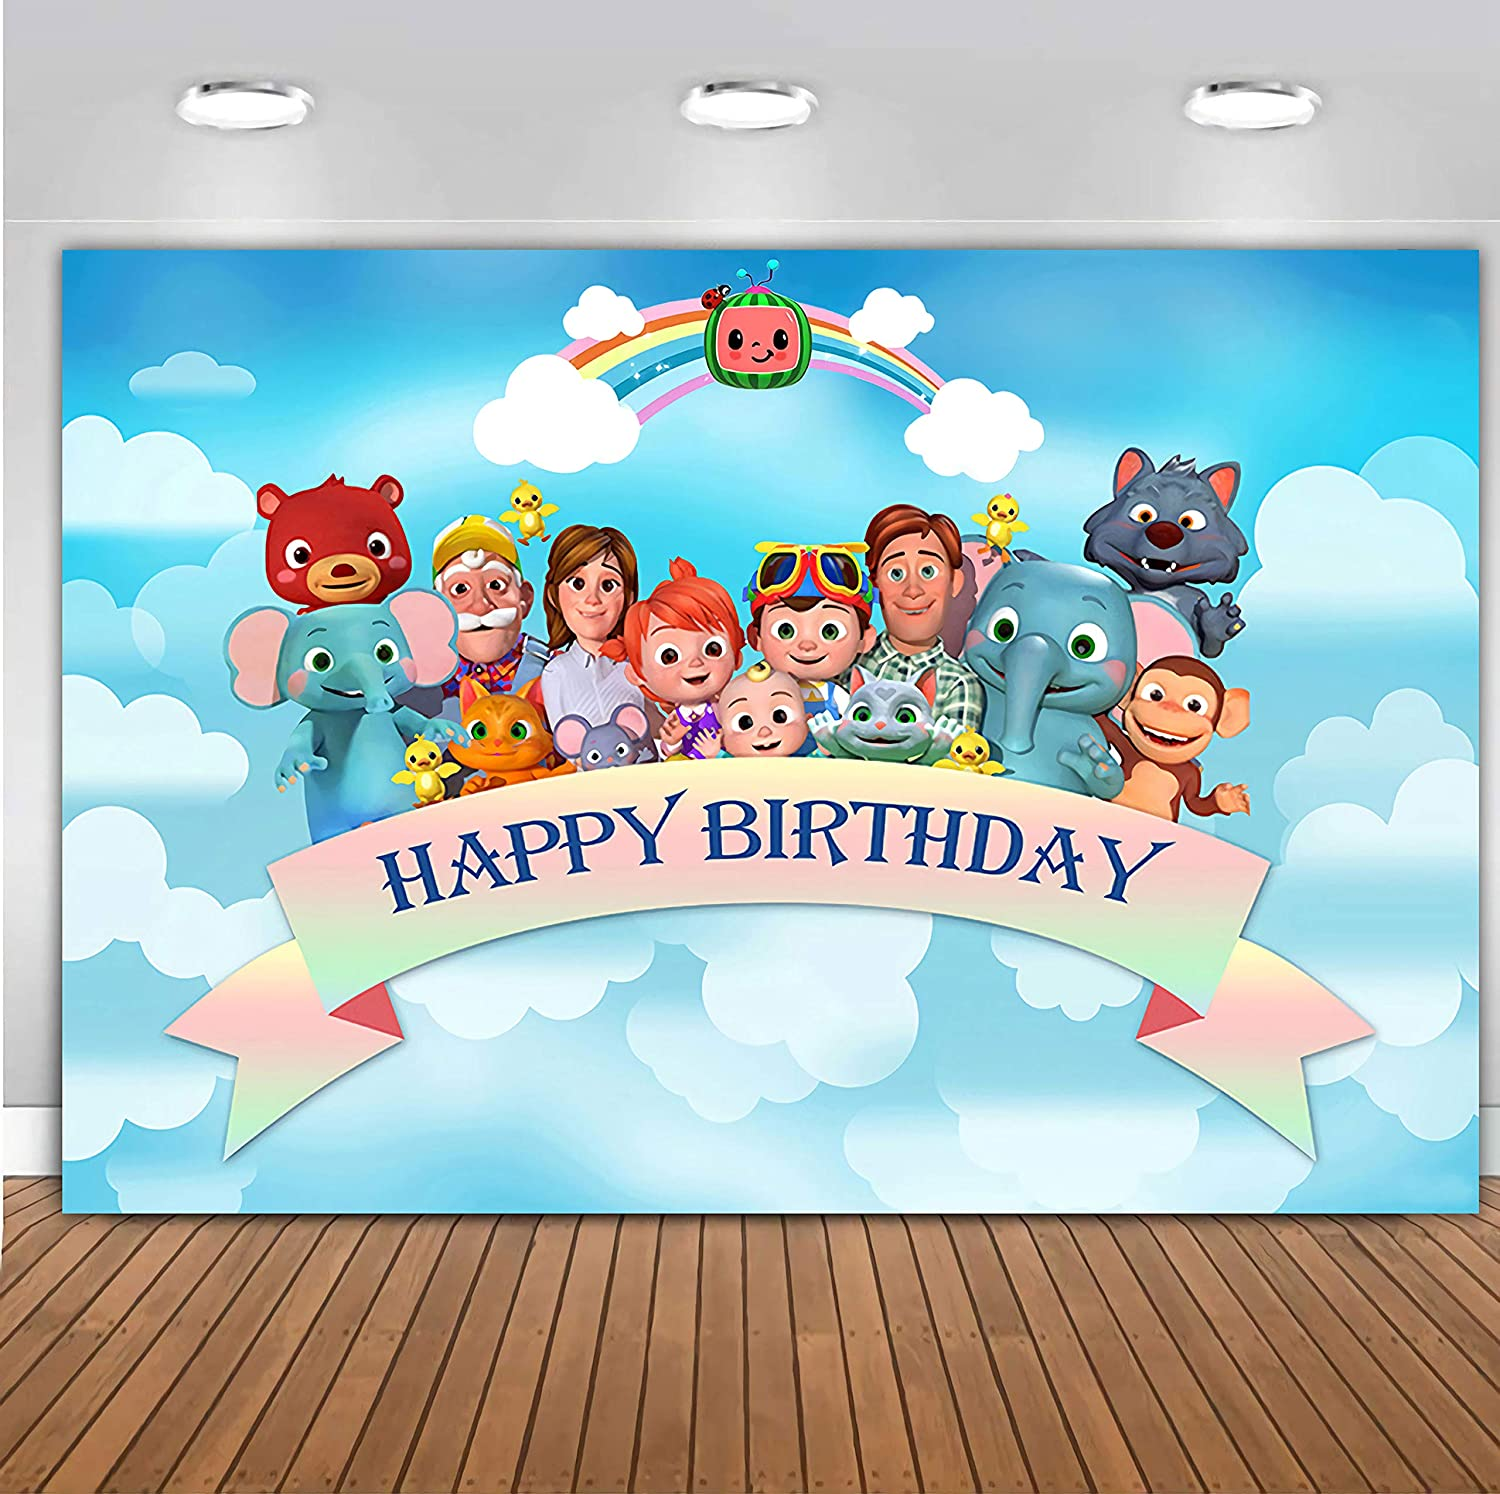 Photography Backgrounds Cocomelon Family Kids Birthday Party Backdrops Blue Sky Clouds Animals Ribbons Photocall Custom for Girls Boy Pictures Cake Table Decor Photo Booth Props